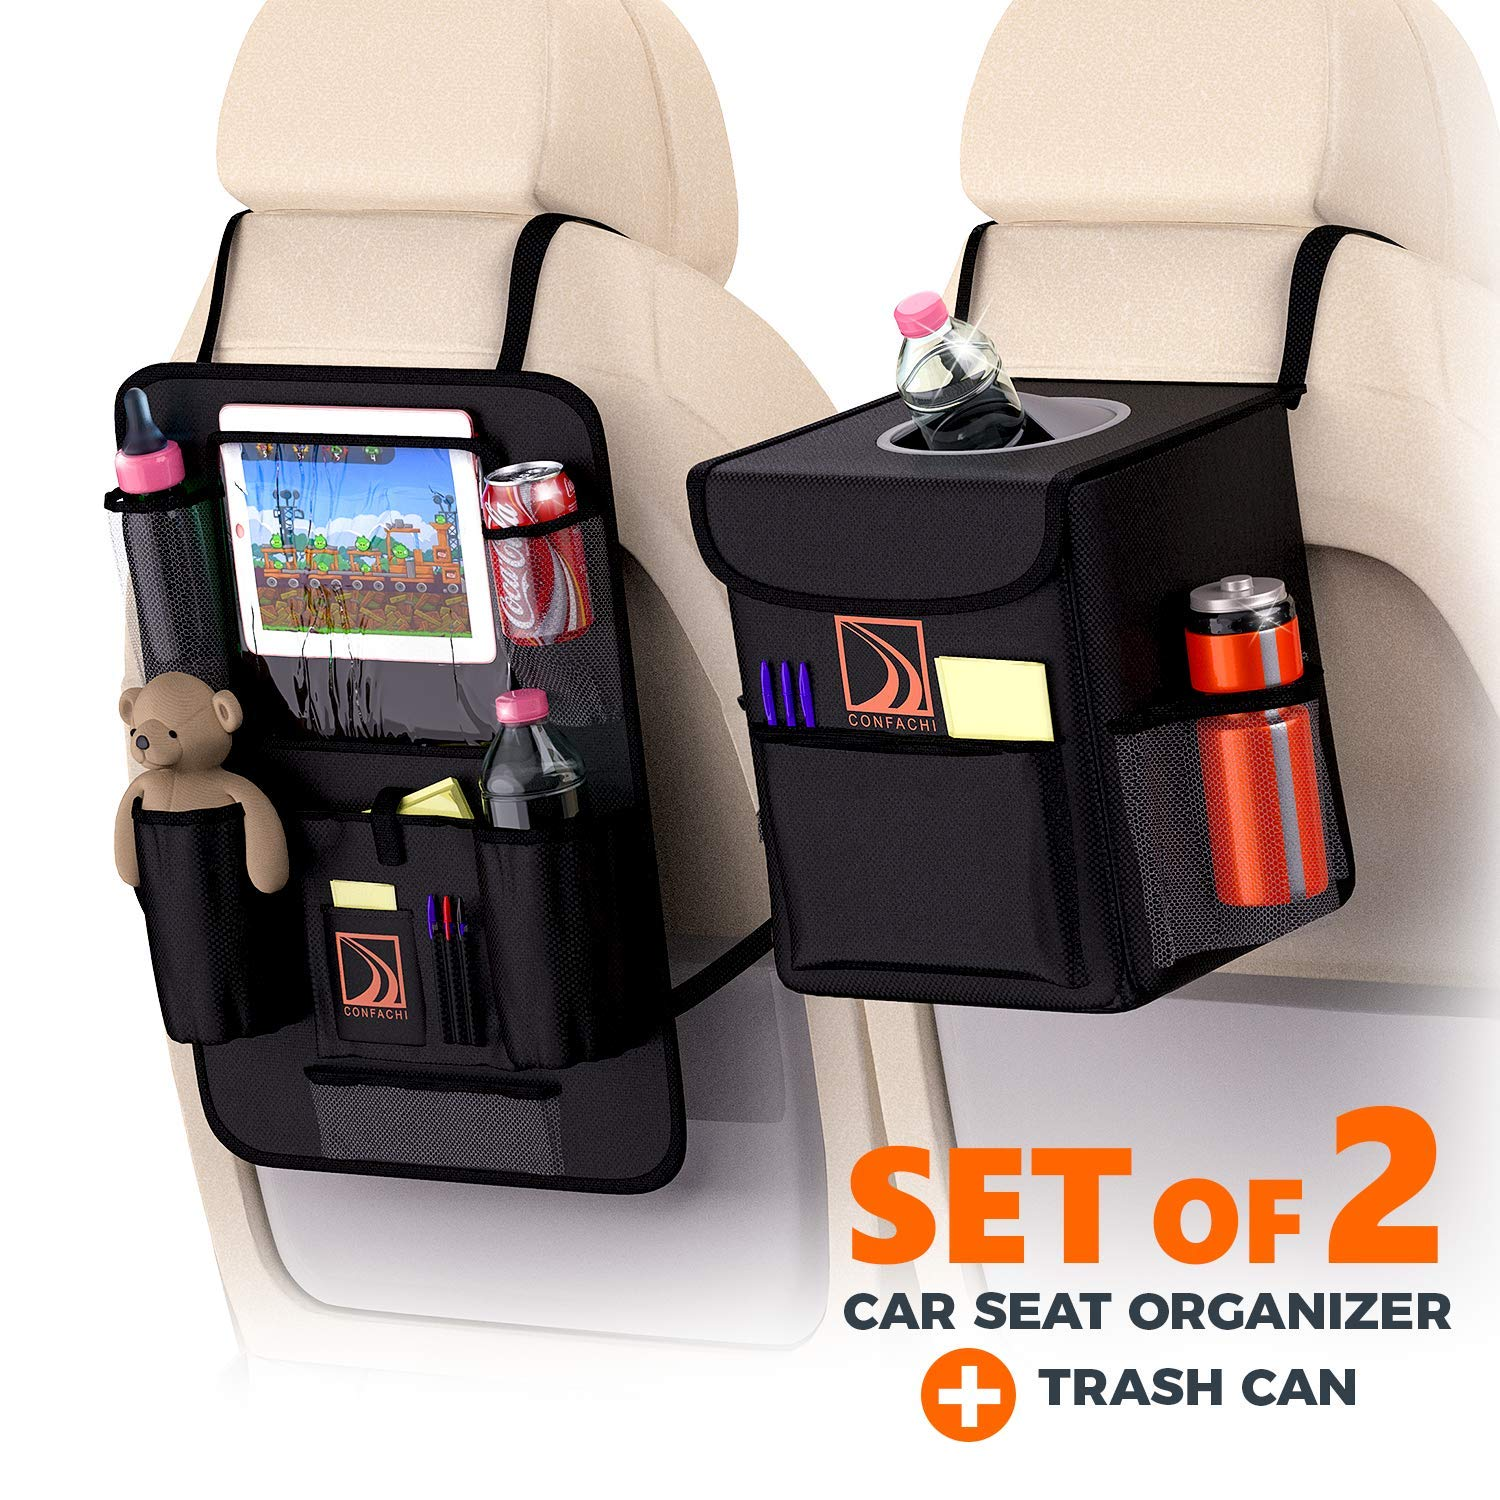 Backseat Car Organizer + Car Trash Can | Bundle of Car Garbage Can with Lid and Car seat Organizer for Kids with Ipad Holder and Cup Holder and Extra Car Storage Pockets by CONFACHI